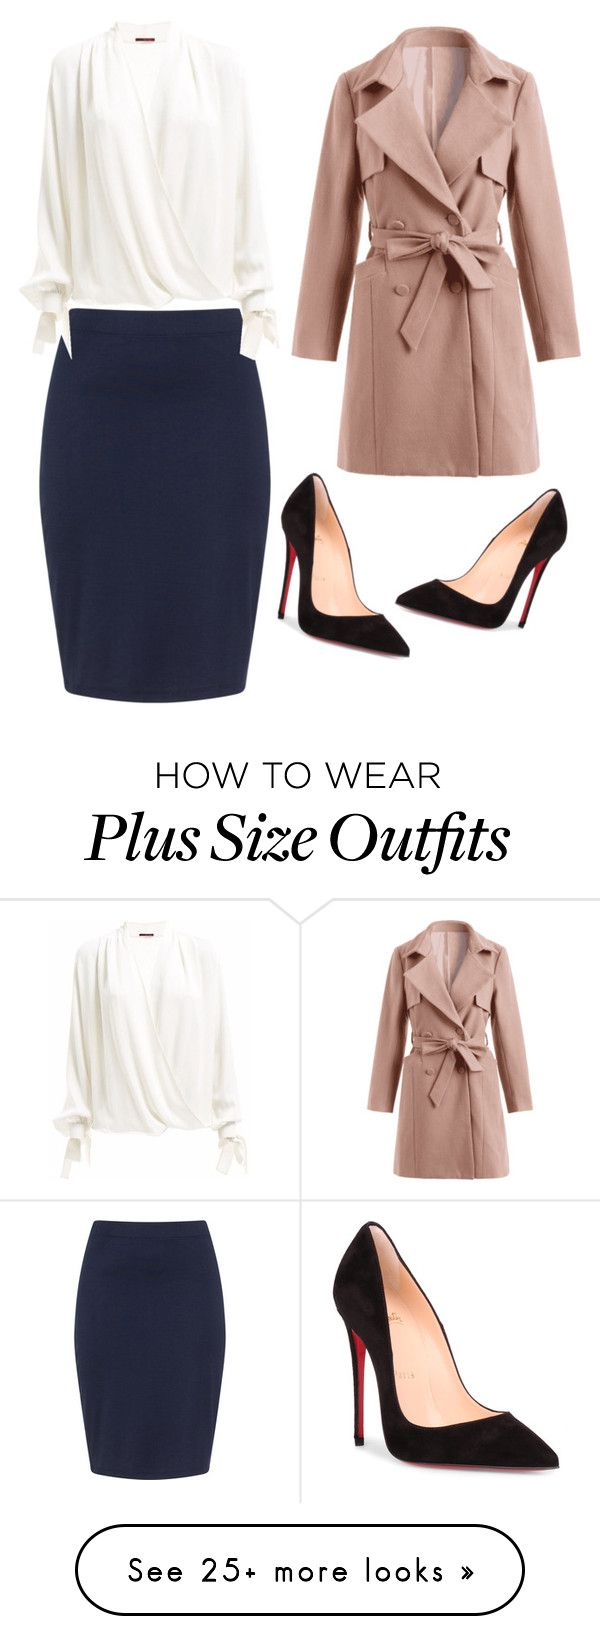 """""""Untitled #256"""" by jjflipflop01 on Polyvore featuring Zizzi and Christian Louboutin"""